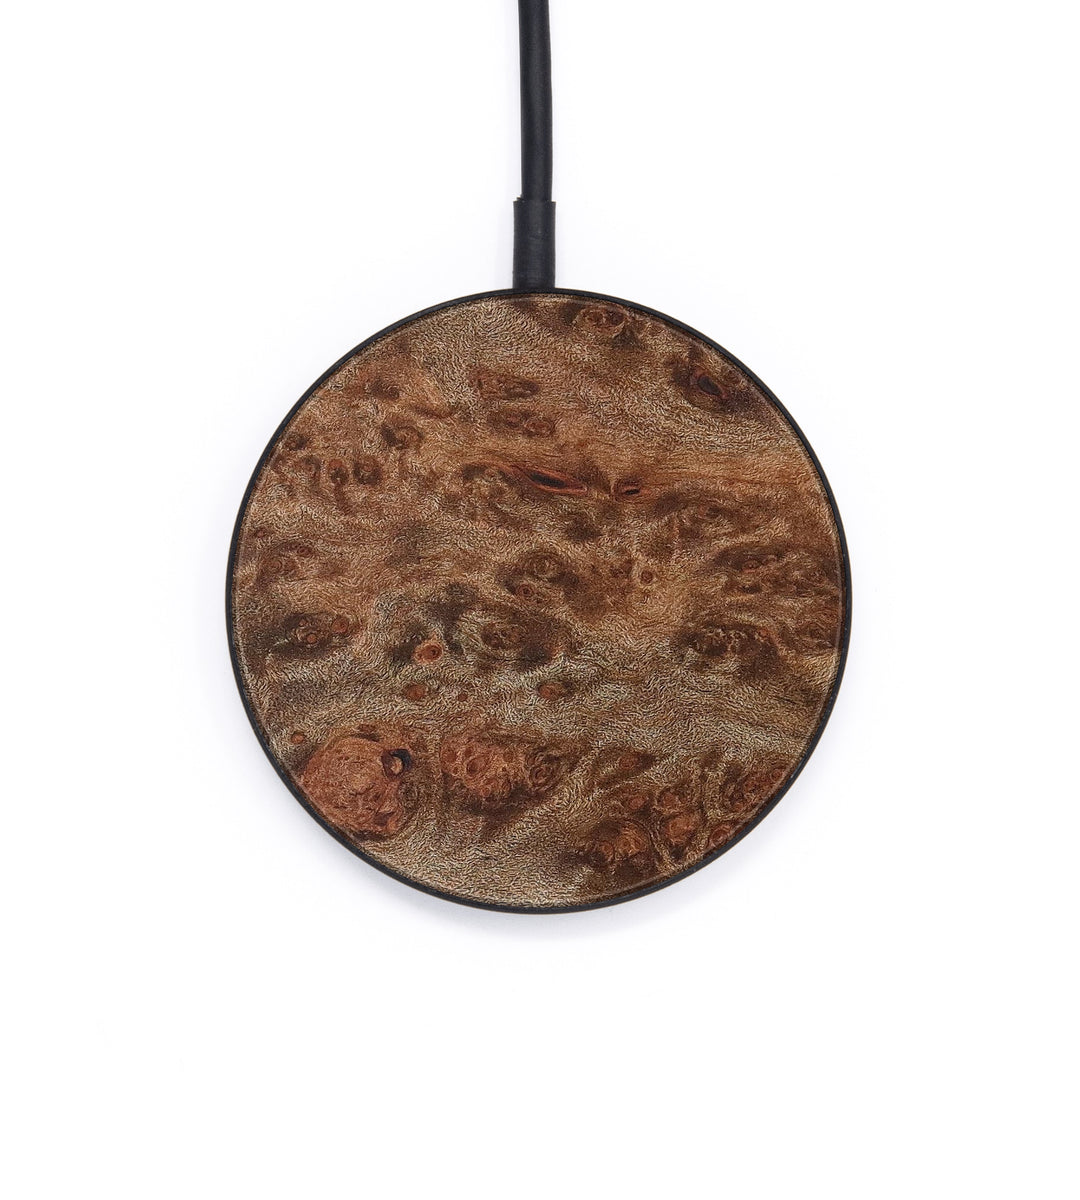 Circle Wood+Resin Wireless Charger - Chiquita (Maple Burl, 386200)